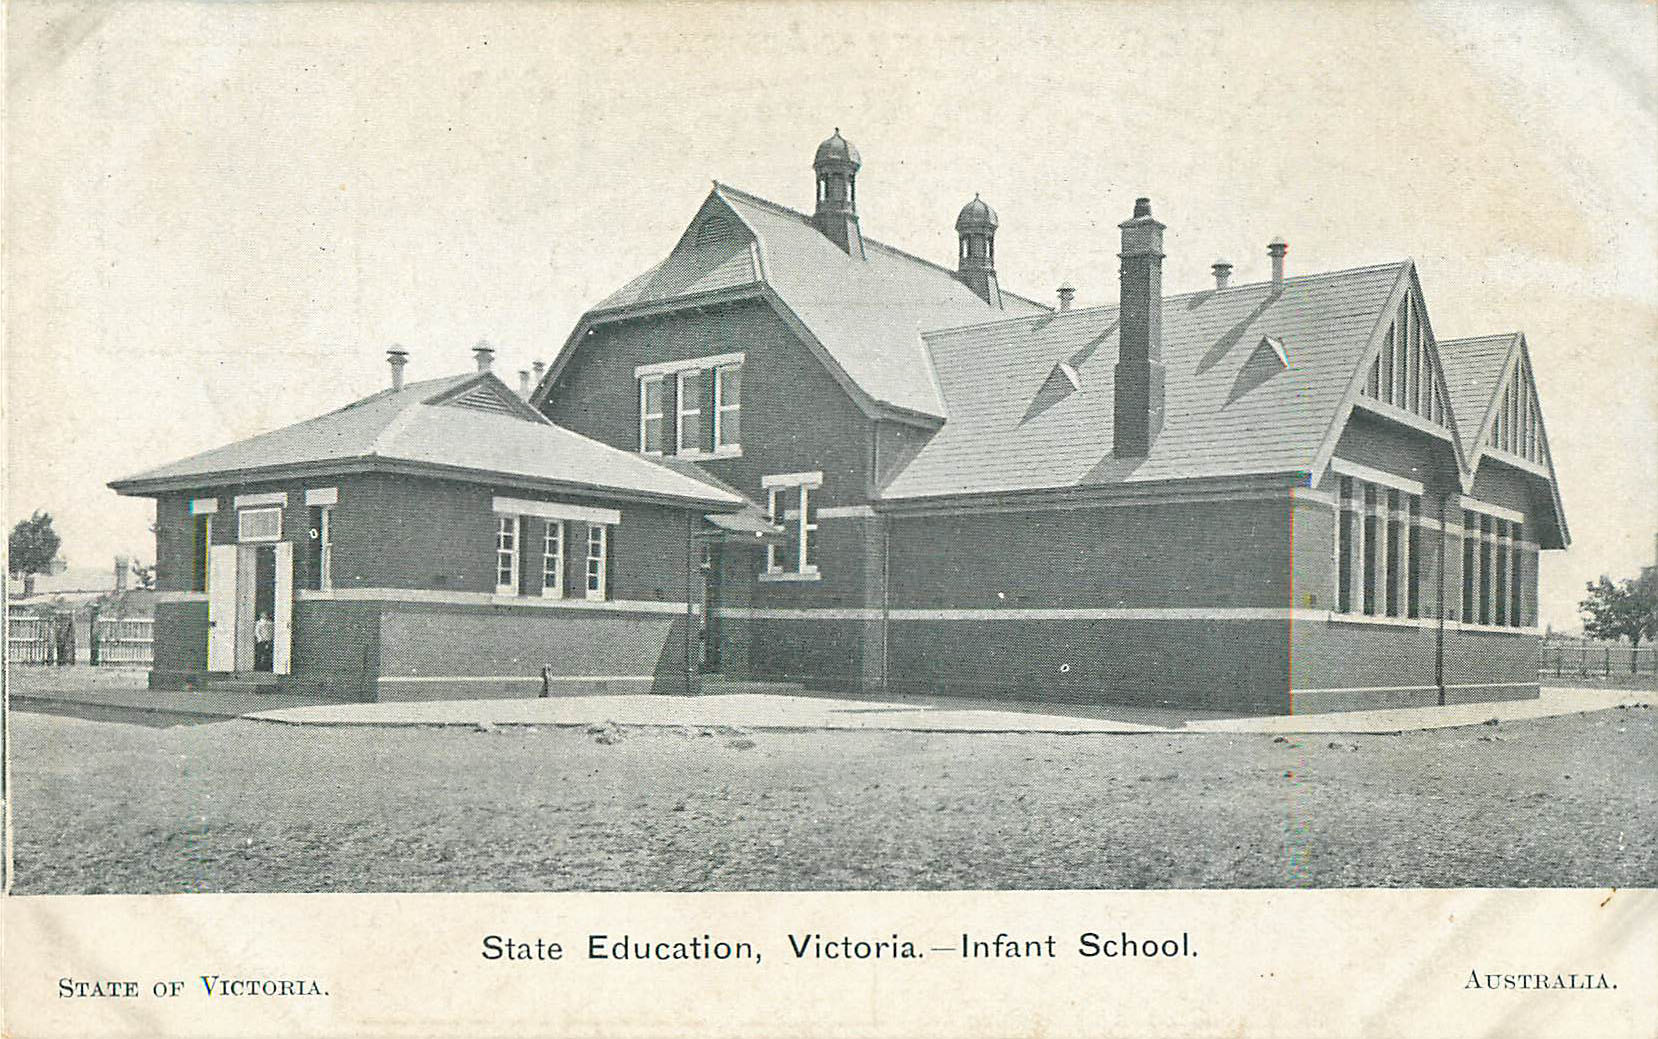 Infant School - State Education, Victoria - Australia